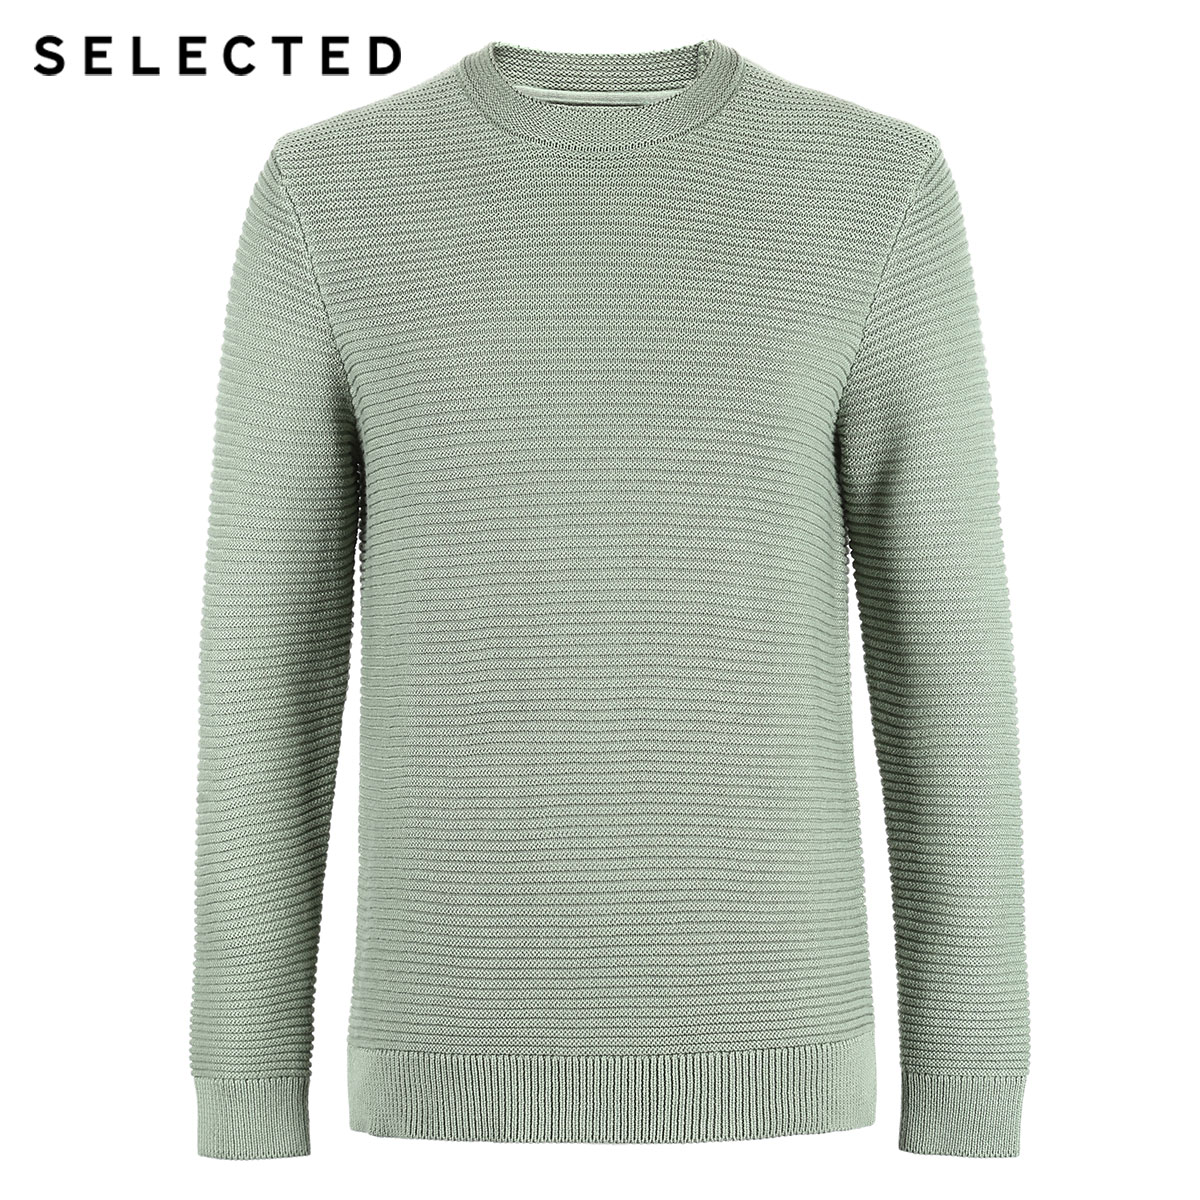 SELECTED Men's 100% Cotton Round Neckline Pullovers Winter New Regular Fit Knitted Sweater S | 419124502